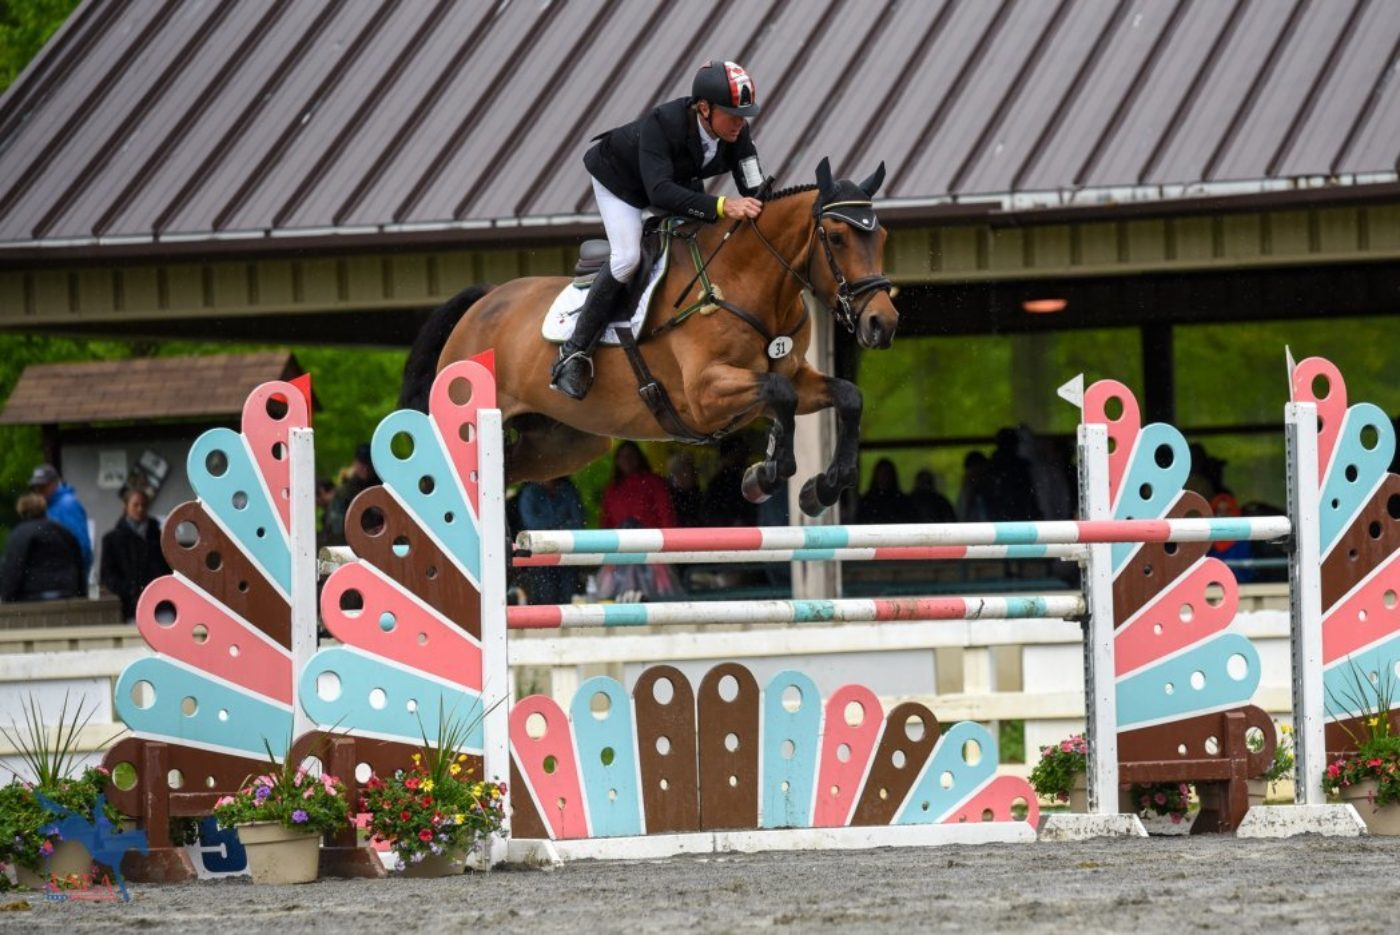 12th - Karl Slezak and Fernhill Wishes - 61.5